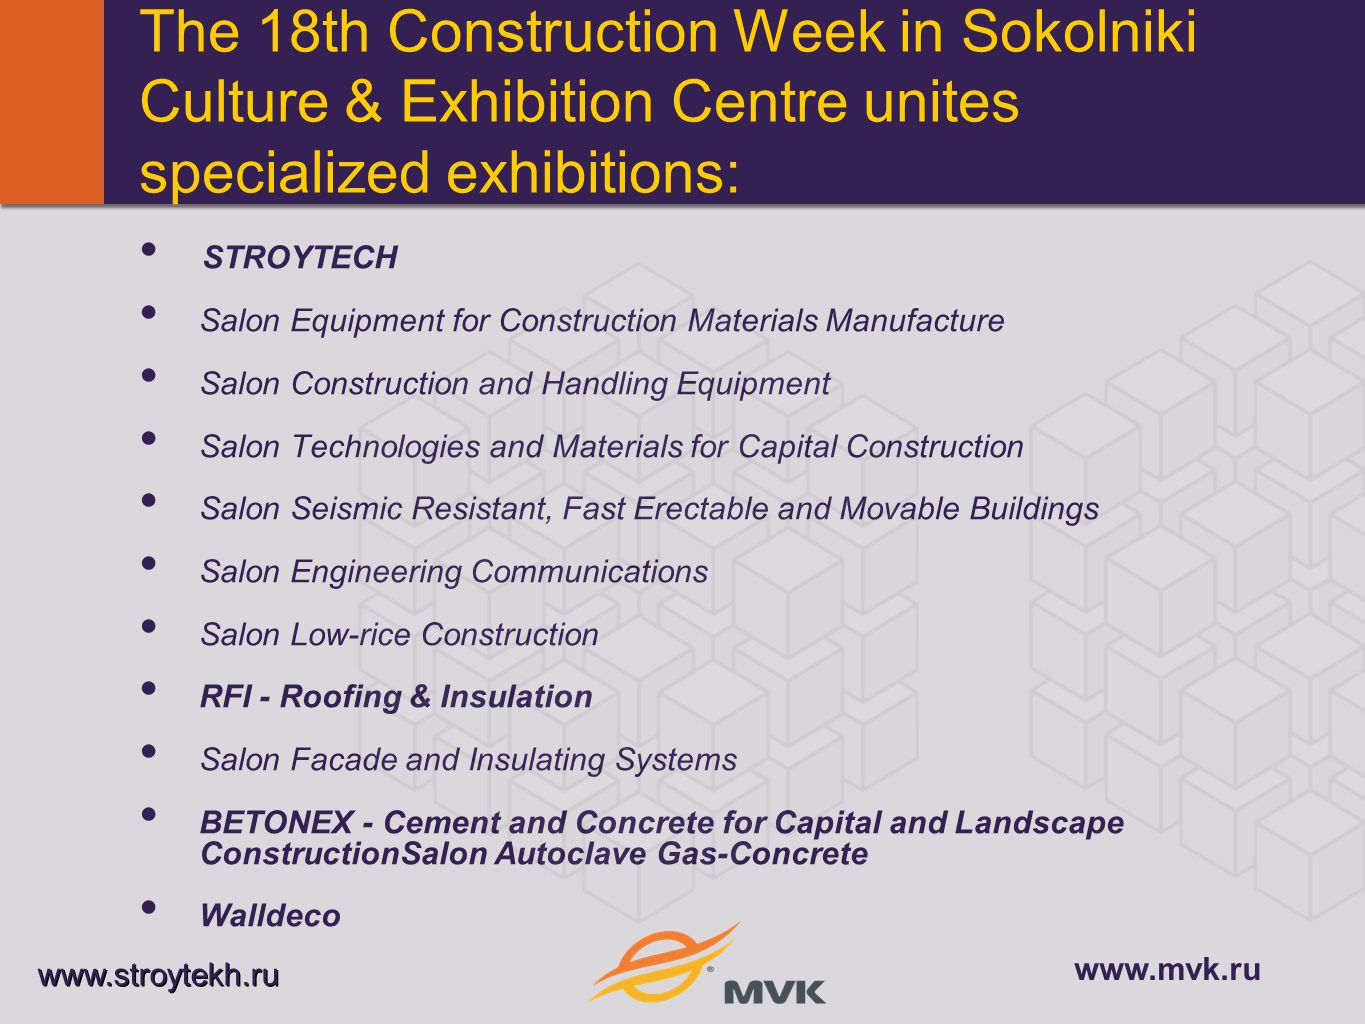 The 18th Construction Week in Sokolniki Culture & Exhibition Centre unites specialized exhibitions: STROYTECH Salon Equipment for Construction Materials Manufacture Salon Construction and Handling Equipment Salon Technologies and Materials for Capital Construction Salon Seismic Resistant, Fast Erectable and Movable Buildings Salon Engineering Communications Salon Low-rice Construction RFI - Roofing & Insulation Salon Facade and Insulating Systems BETONEX - Cement and Concrete for Capital and Landscape ConstructionSalon Autoclave Gas-Concrete Walldeco www.stroytekh.ru www.mvk.ru